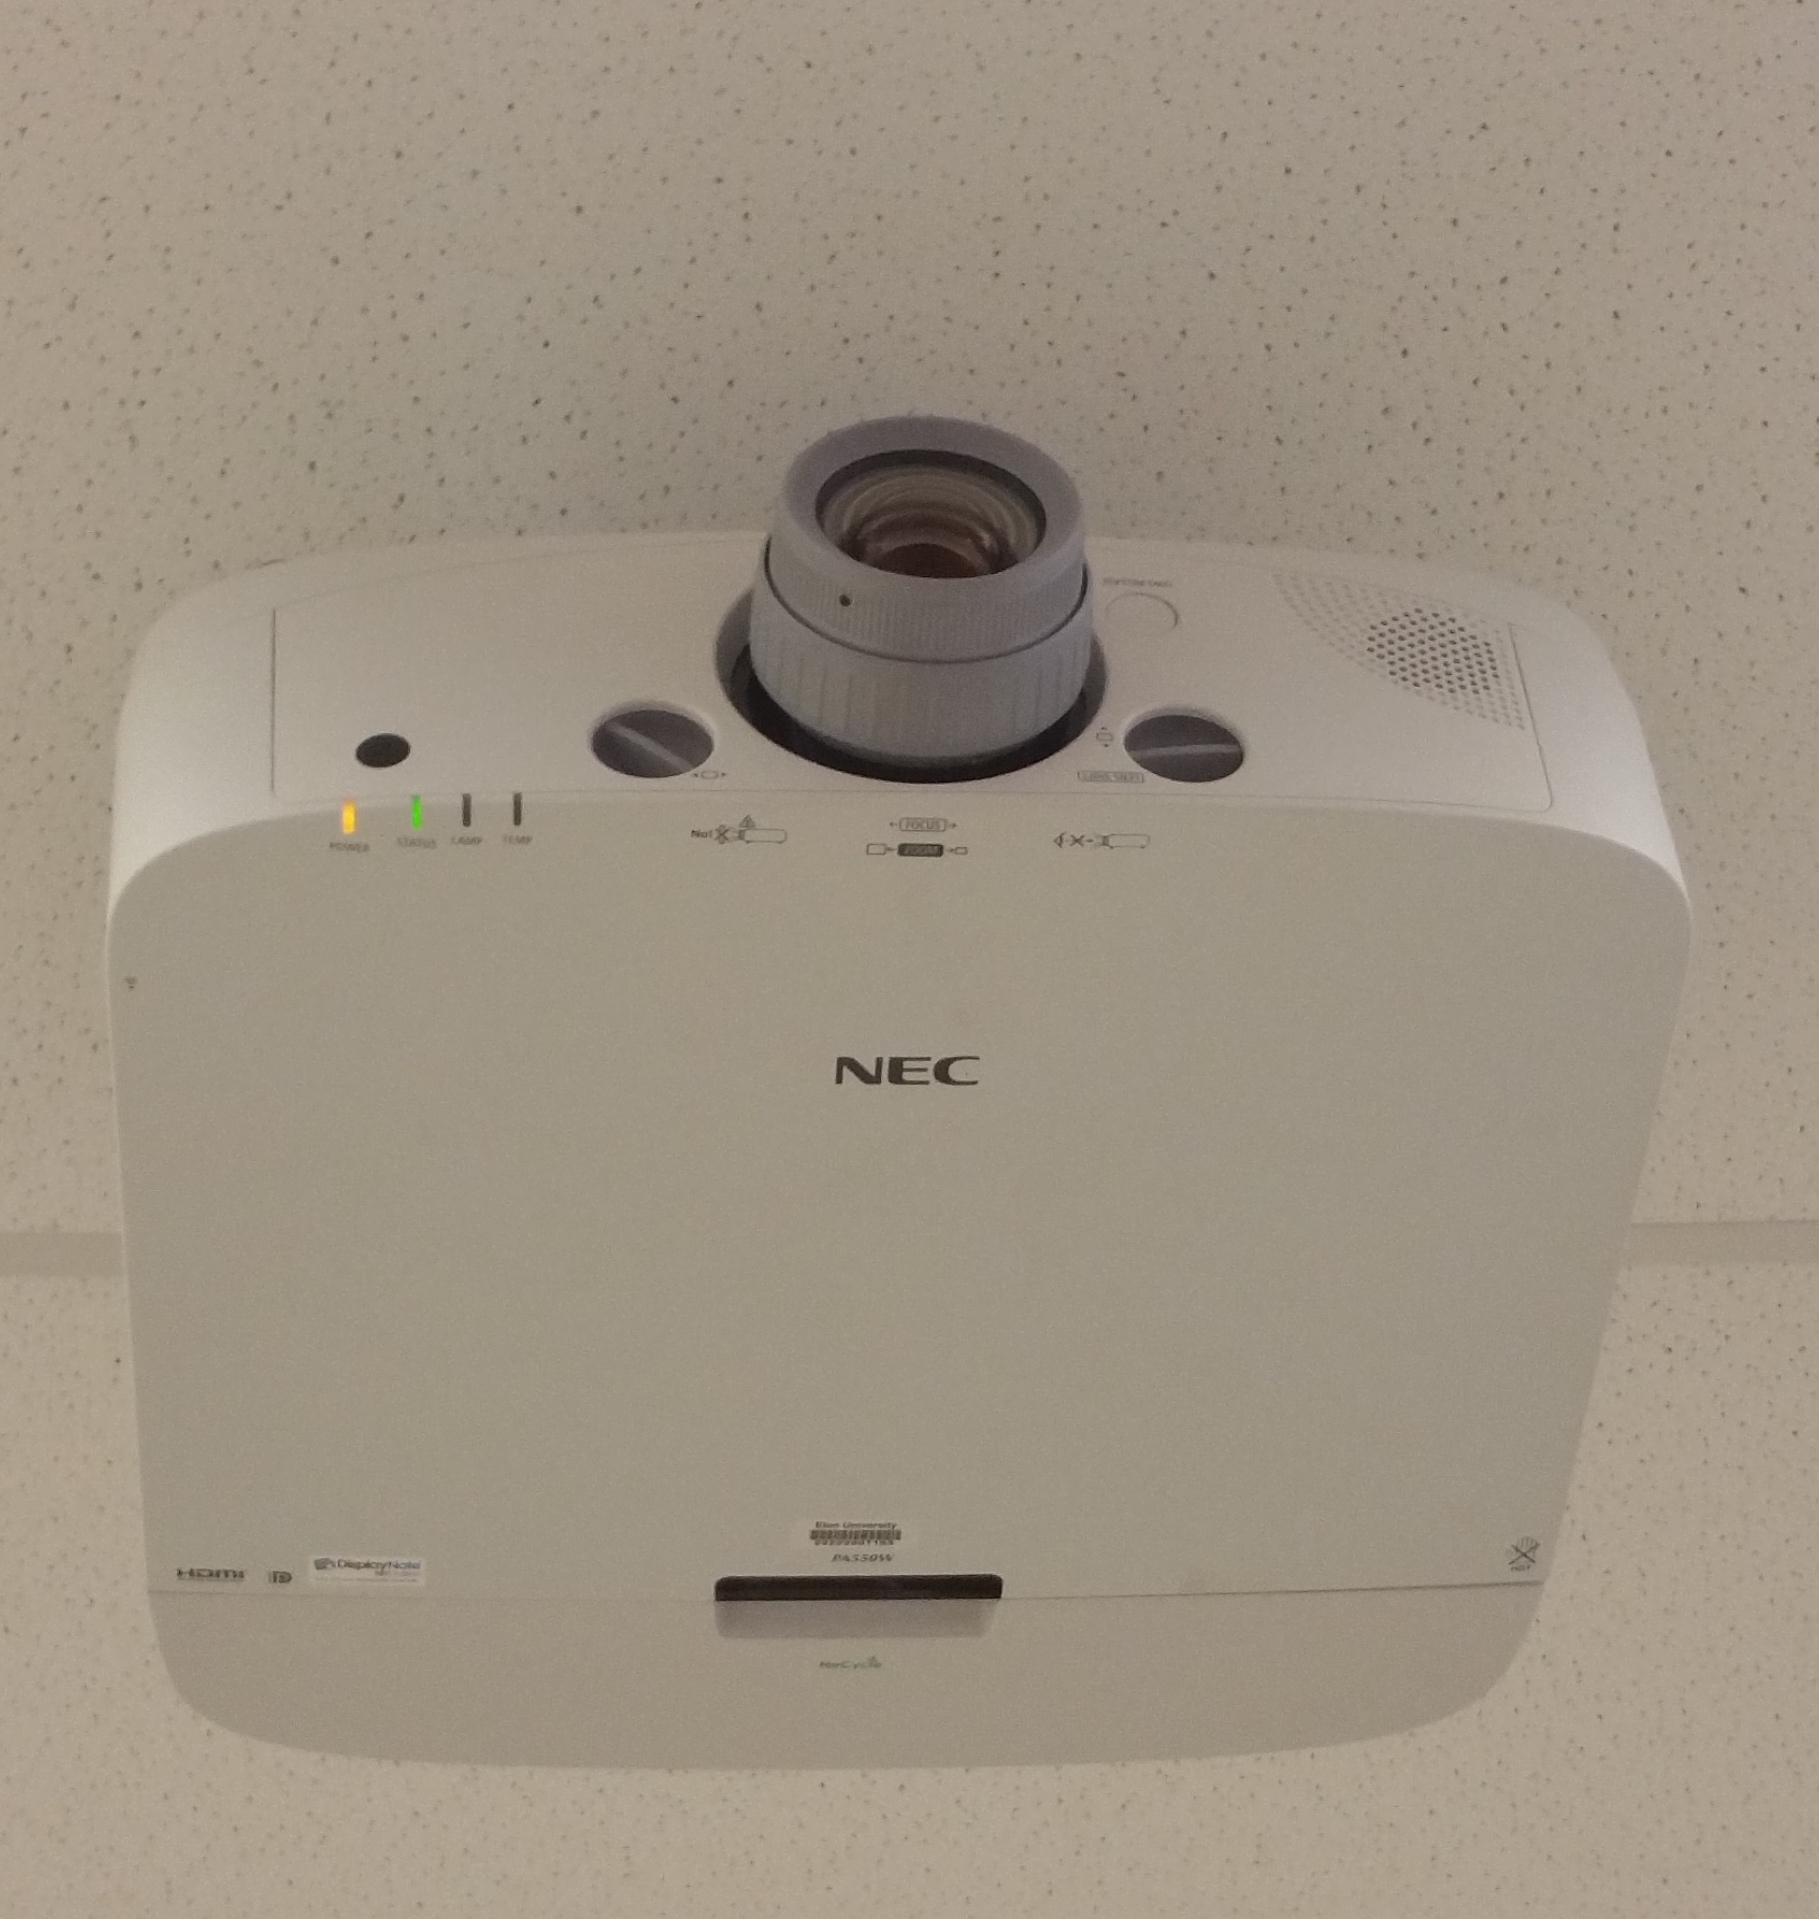 A picture of the NEC projector.